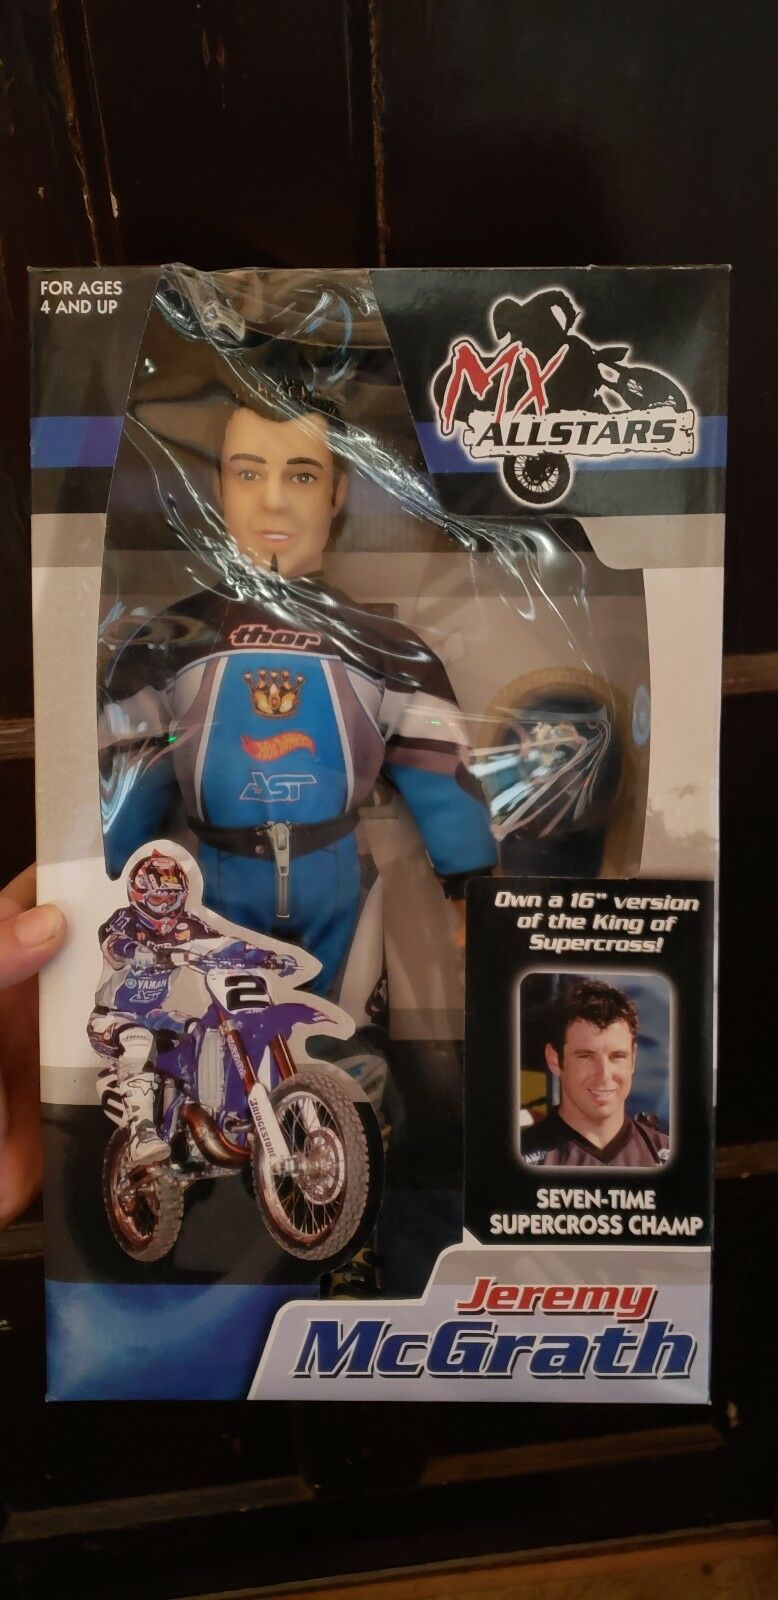 NEW MX ALLSTARS COLLECTABLE JEREMY MCGRATH THOR YAMAHA 16 TOY ACTION FIGURE DOLL